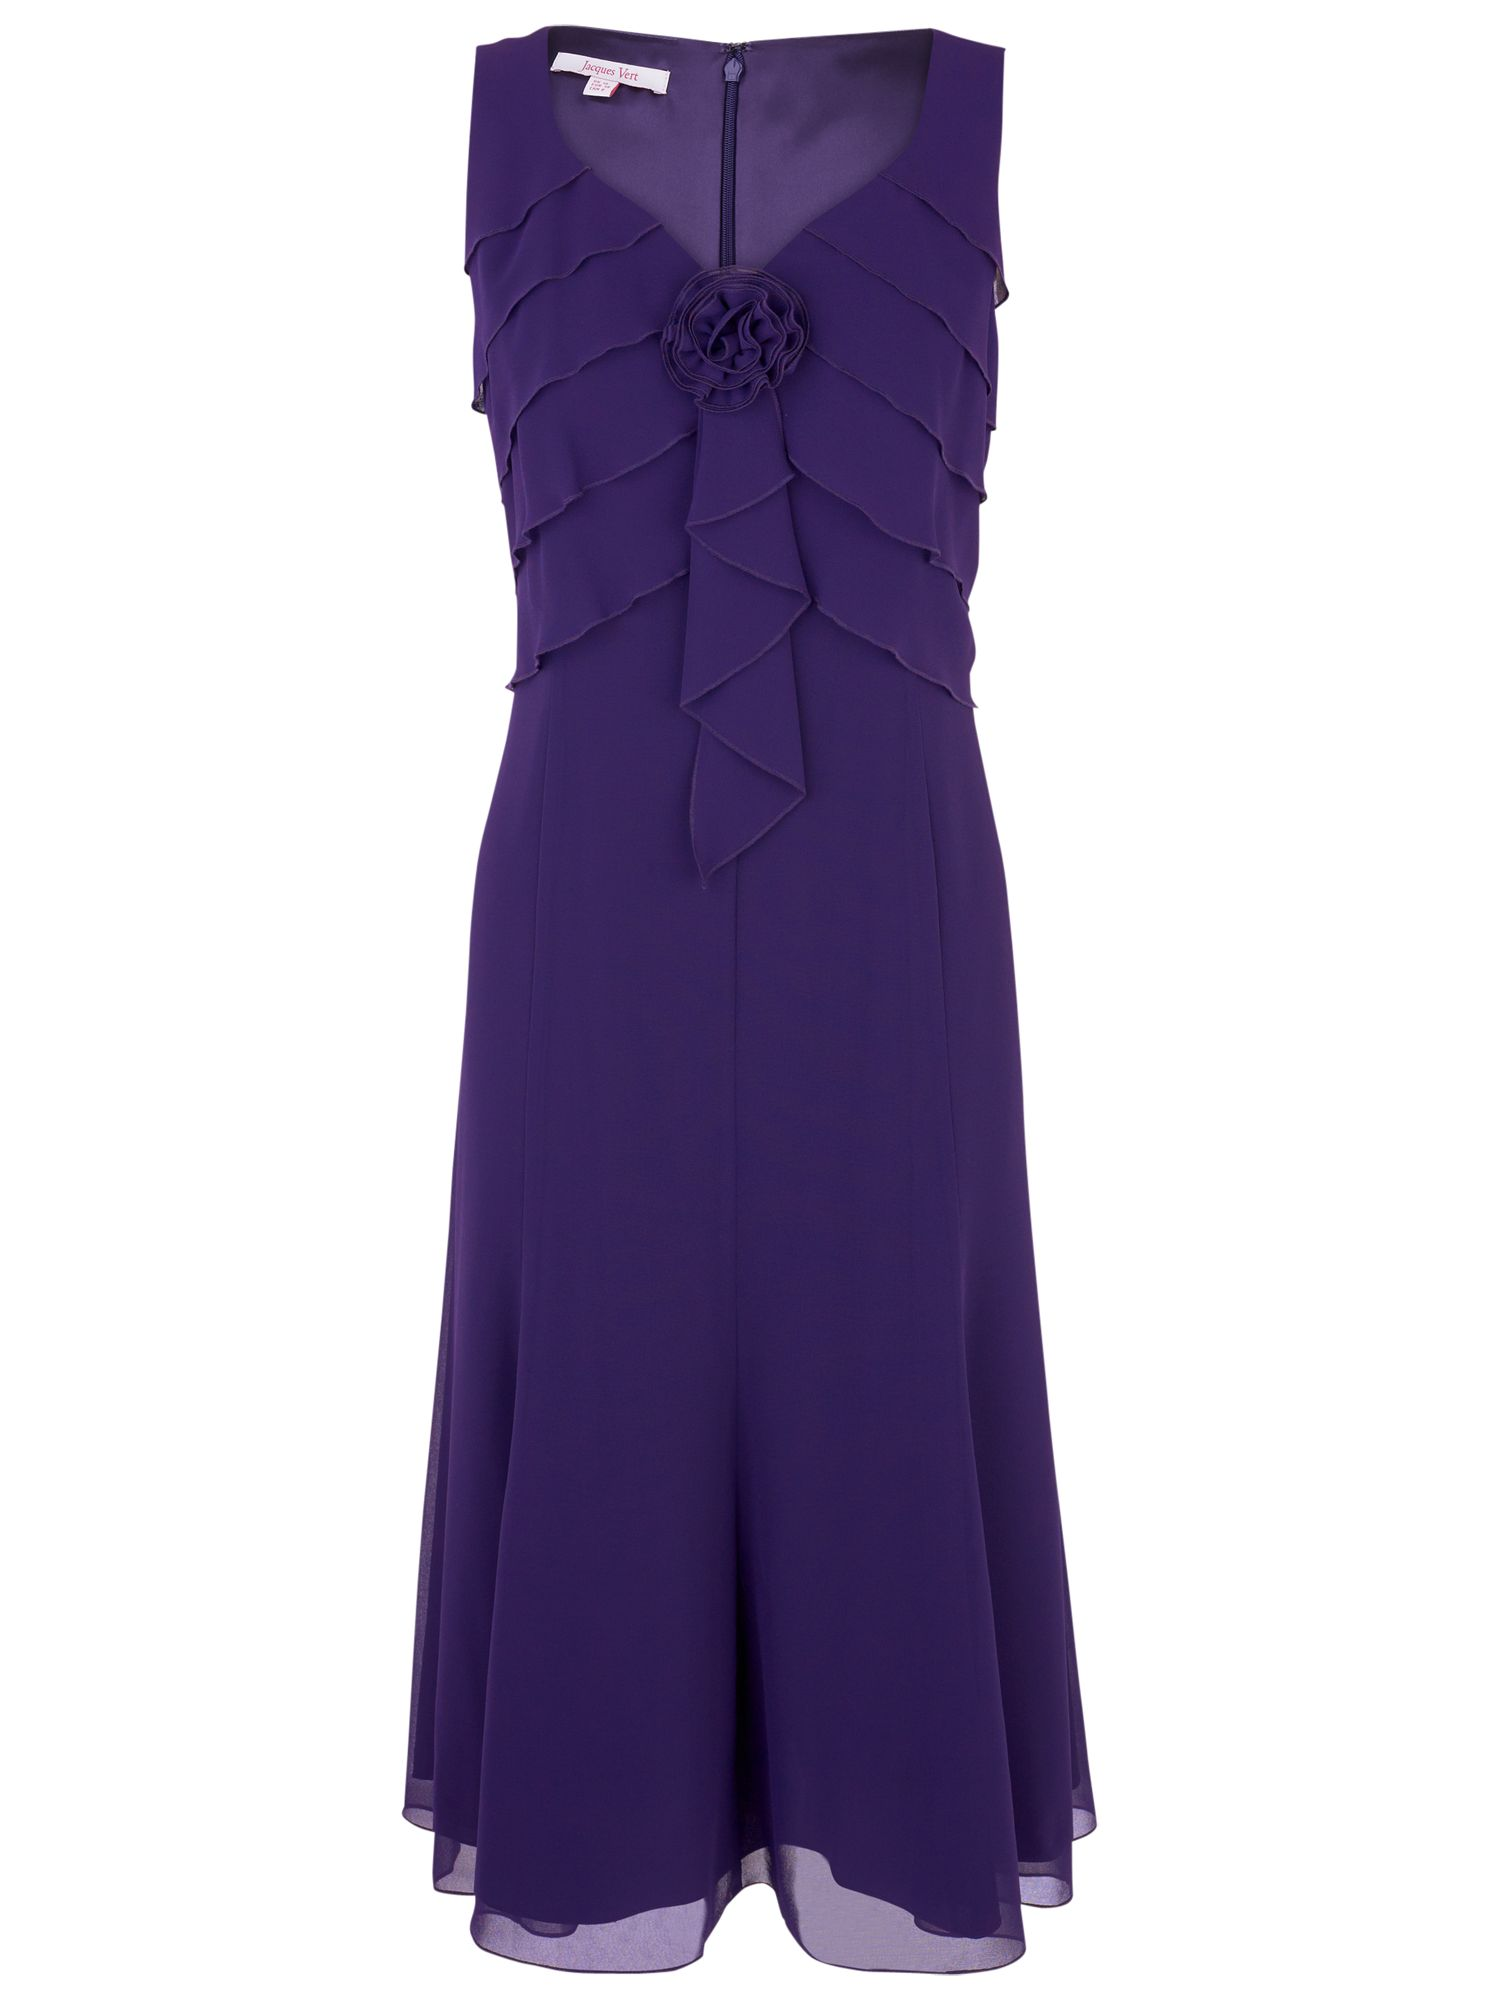 Jacques Vert Bramble Layered Dress, Plum